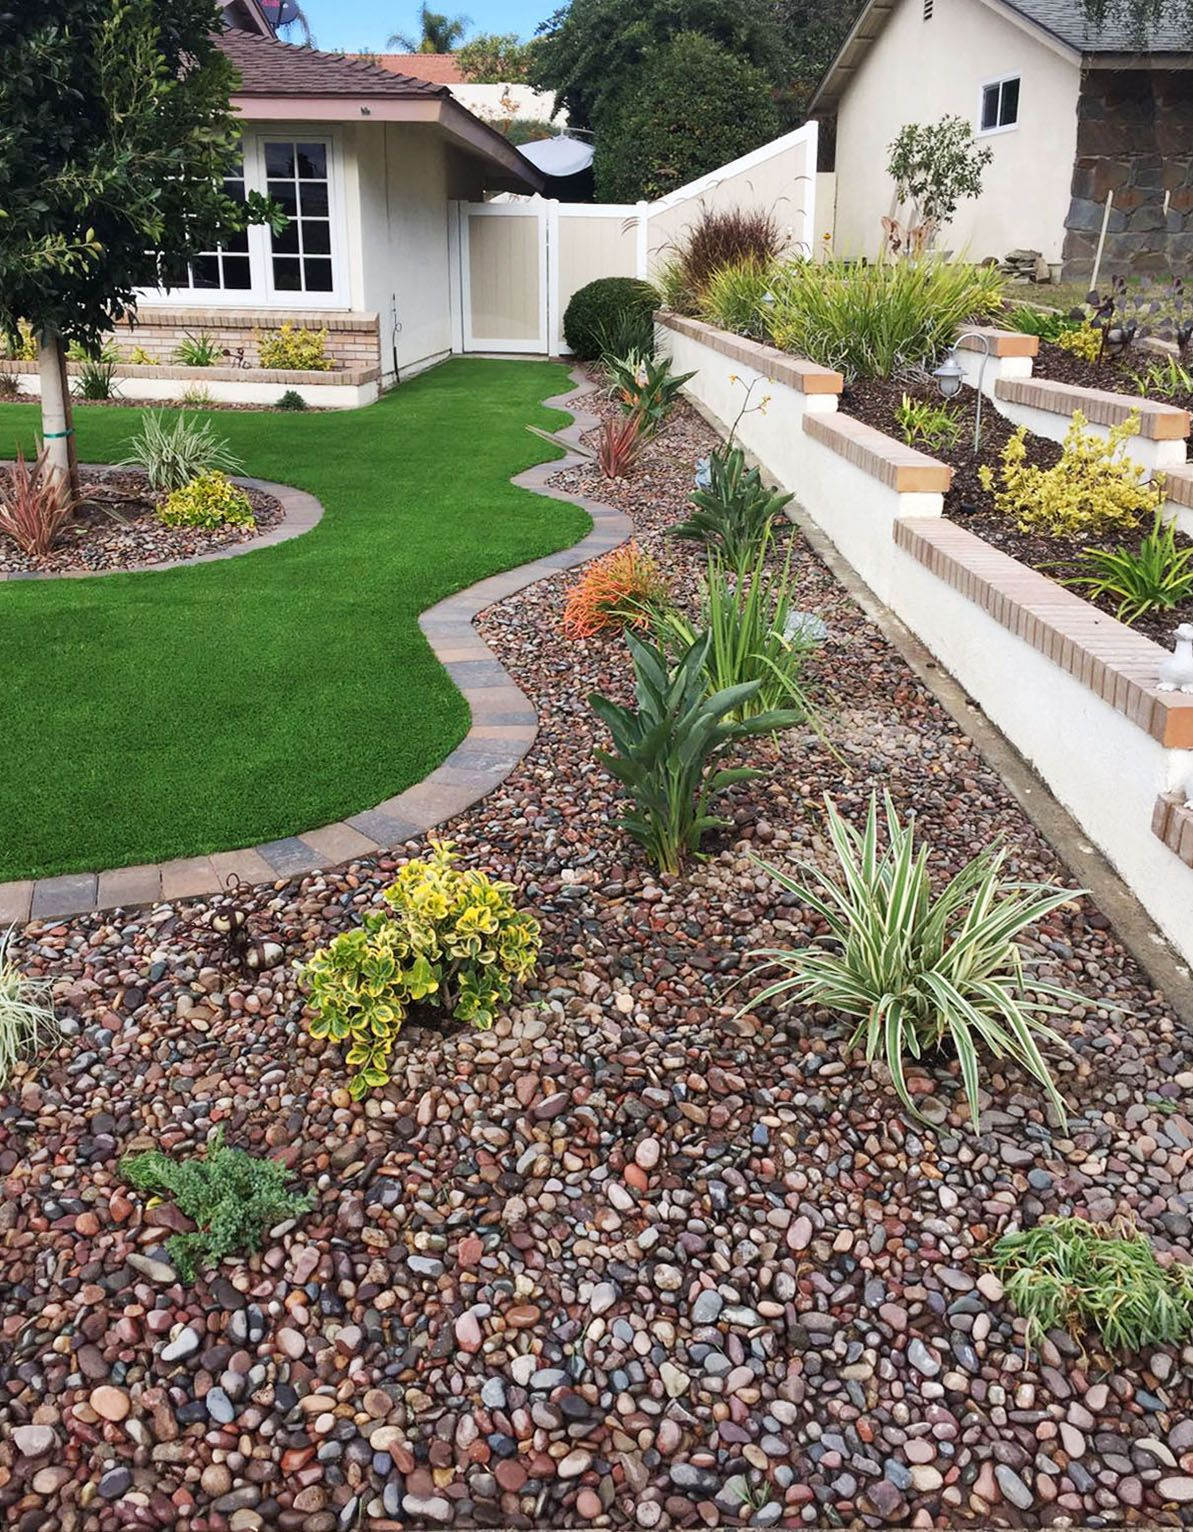 32 Stunning Low Water Landscaping Ideas For Your Garden: Artificial Grass And Drought Tolerant Landscaping